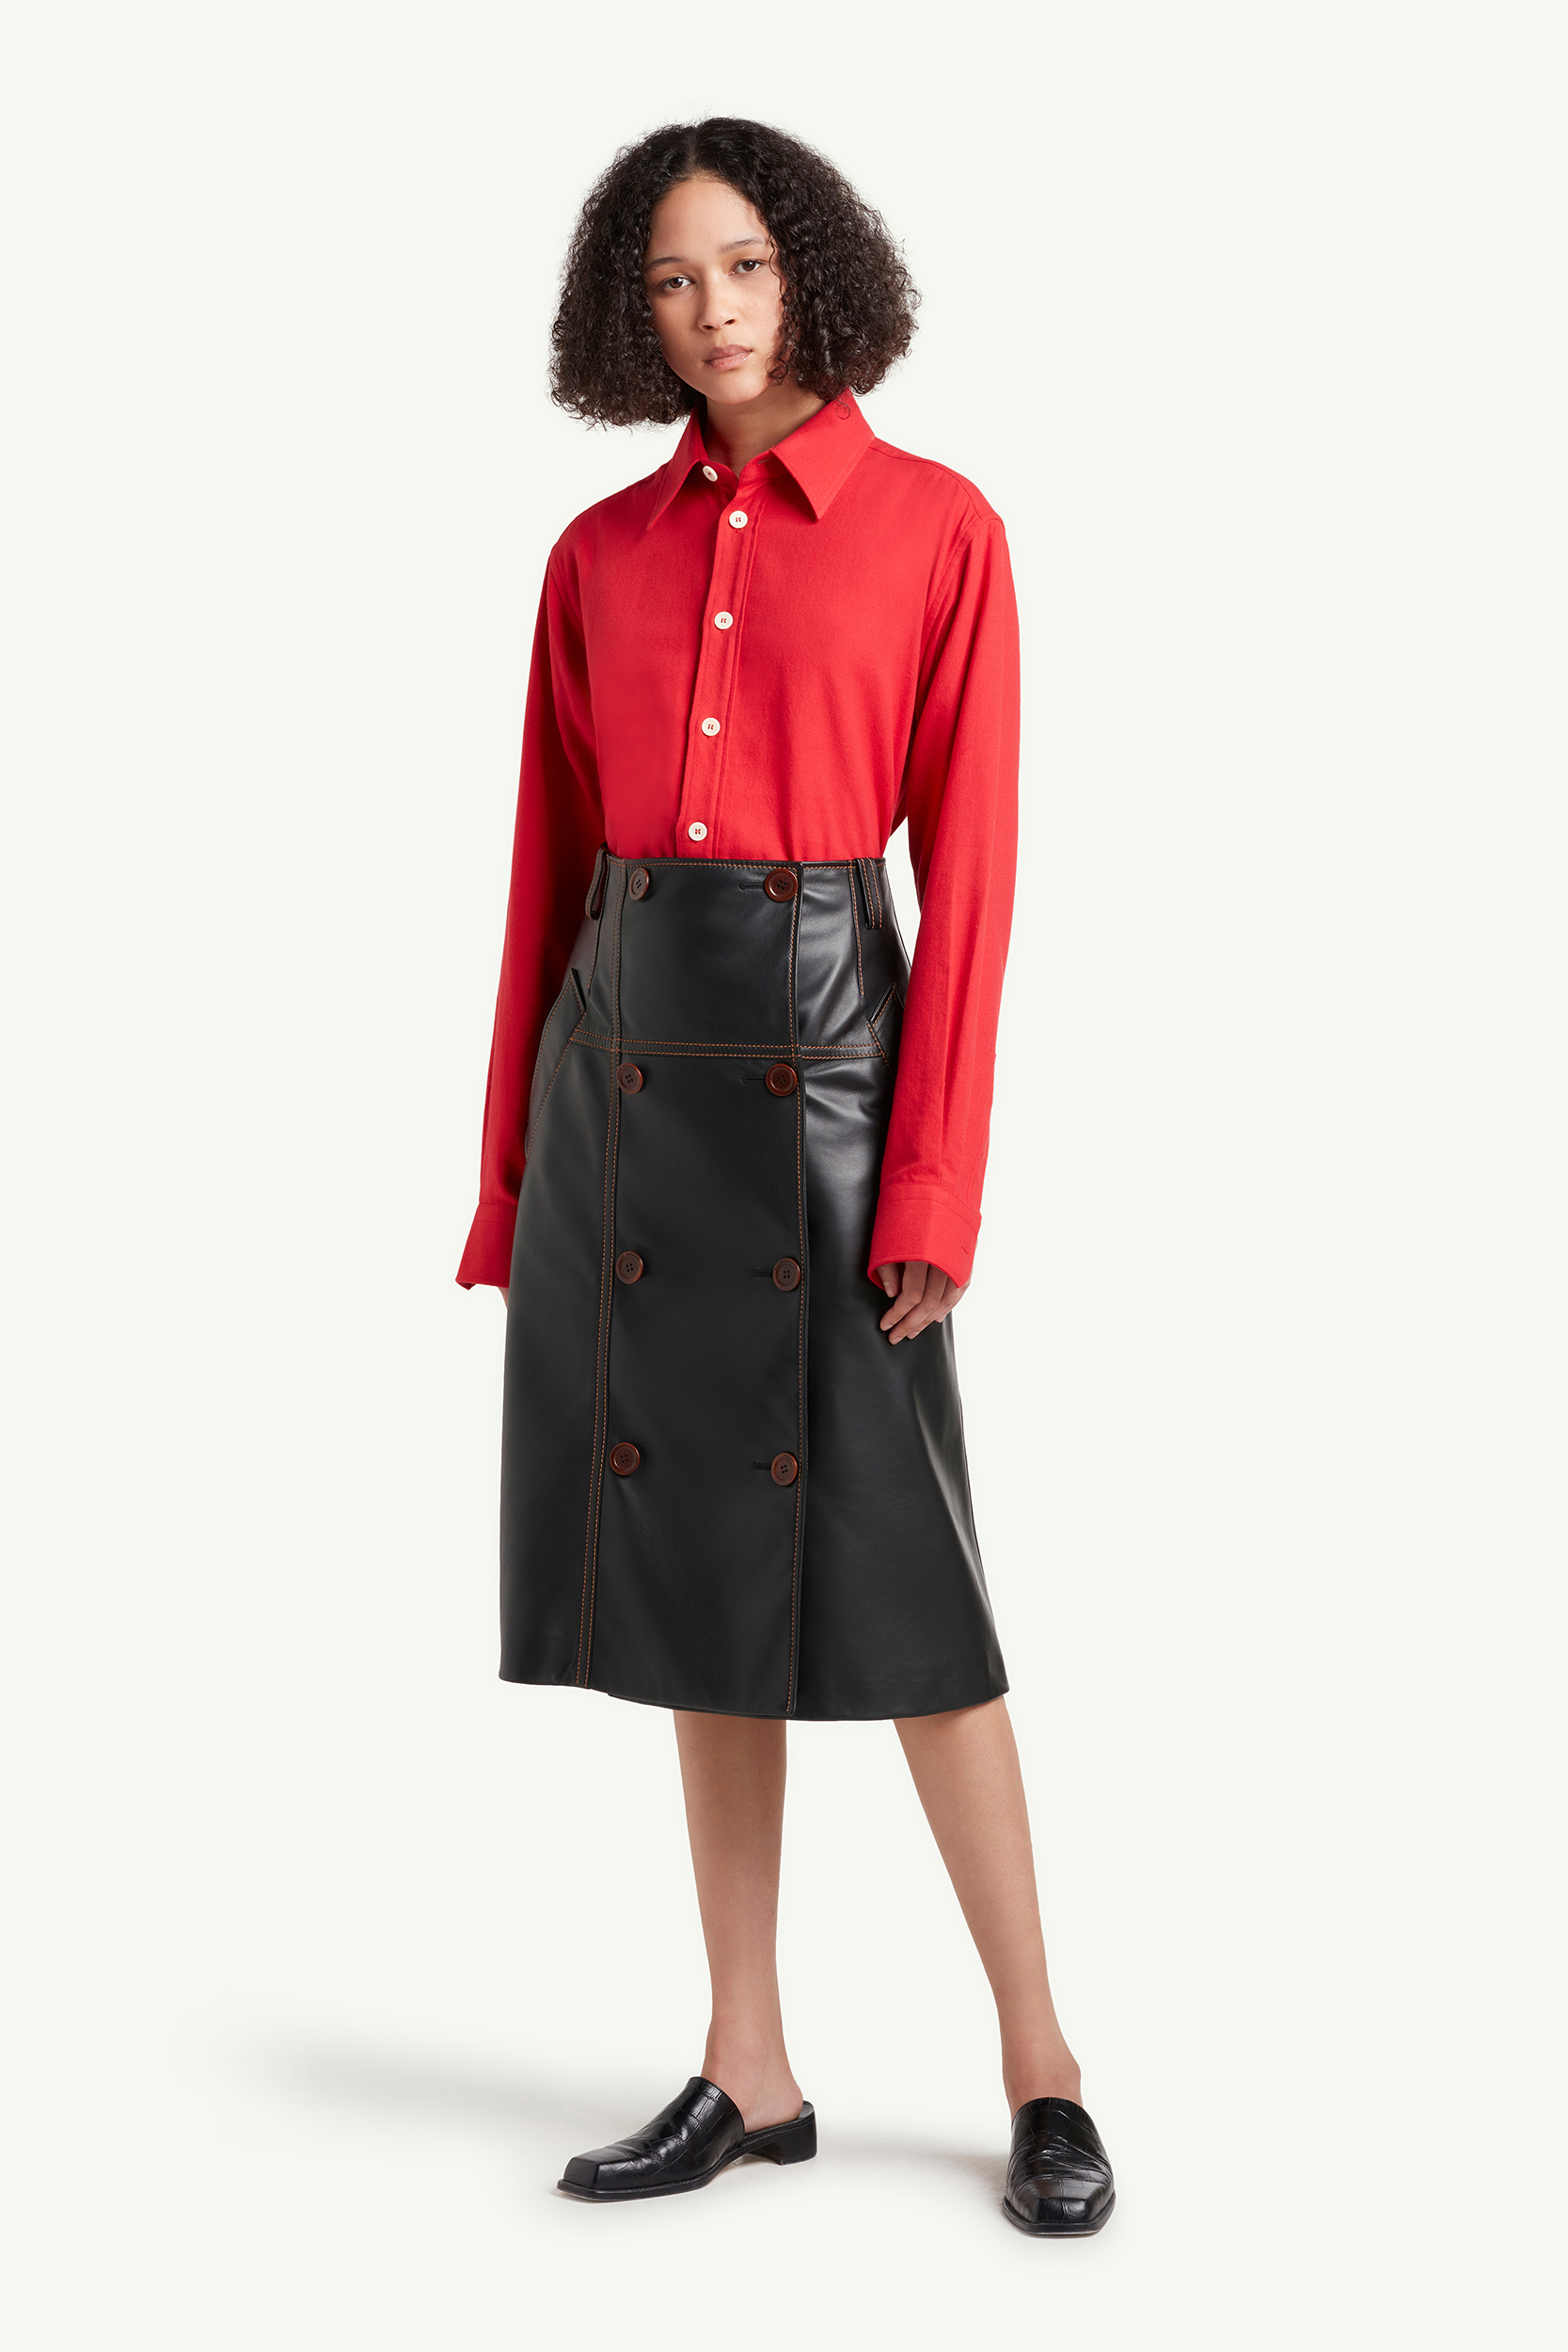 Wales Bonner Menswear Model wearing a red shirt and leather skirt | LRP